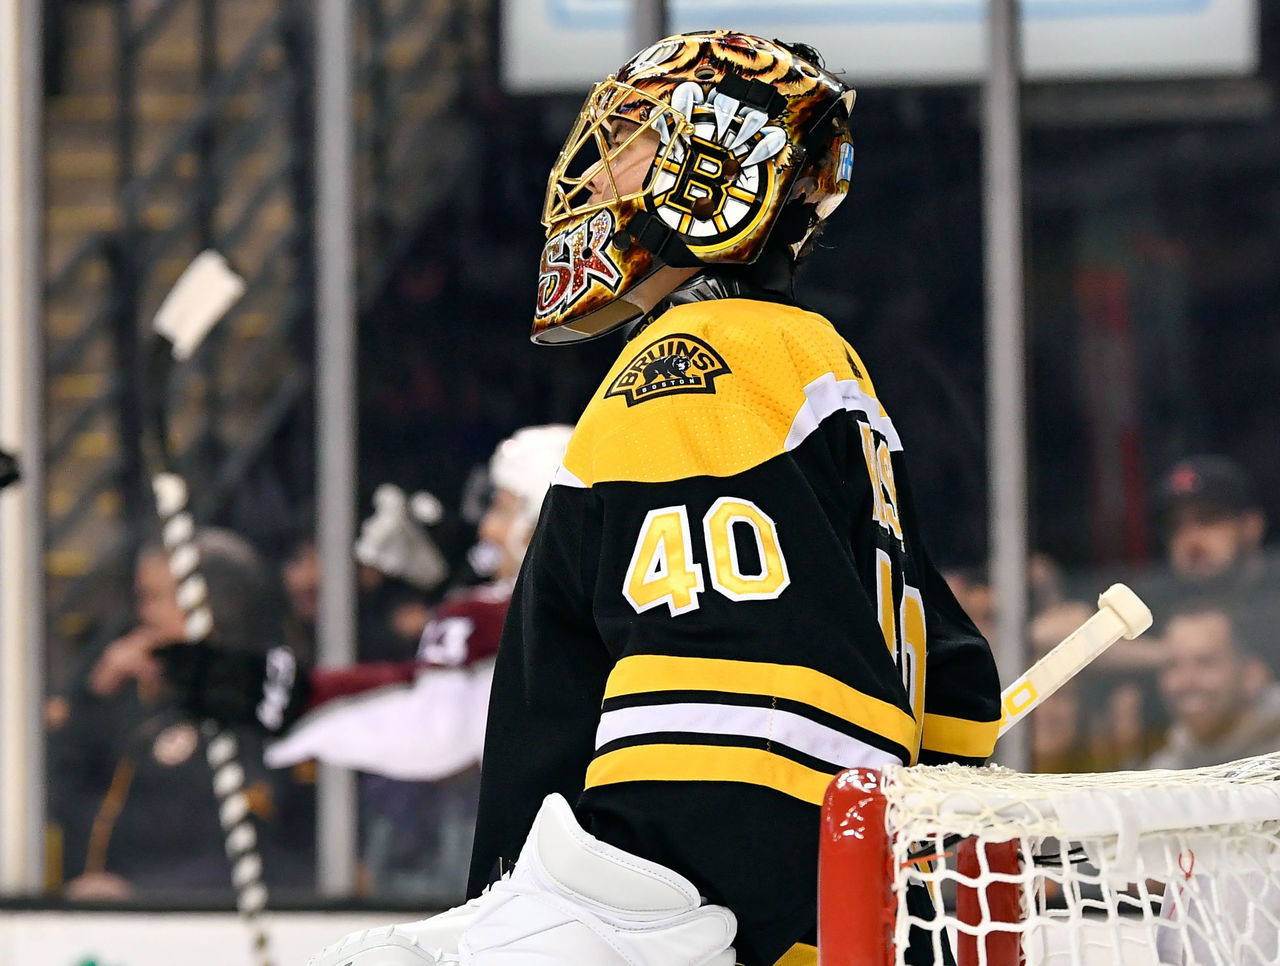 Cropped_2017-10-09t200004z_625870890_nocid_rtrmadp_3_nhl-colorado-avalanche-at-boston-bruins